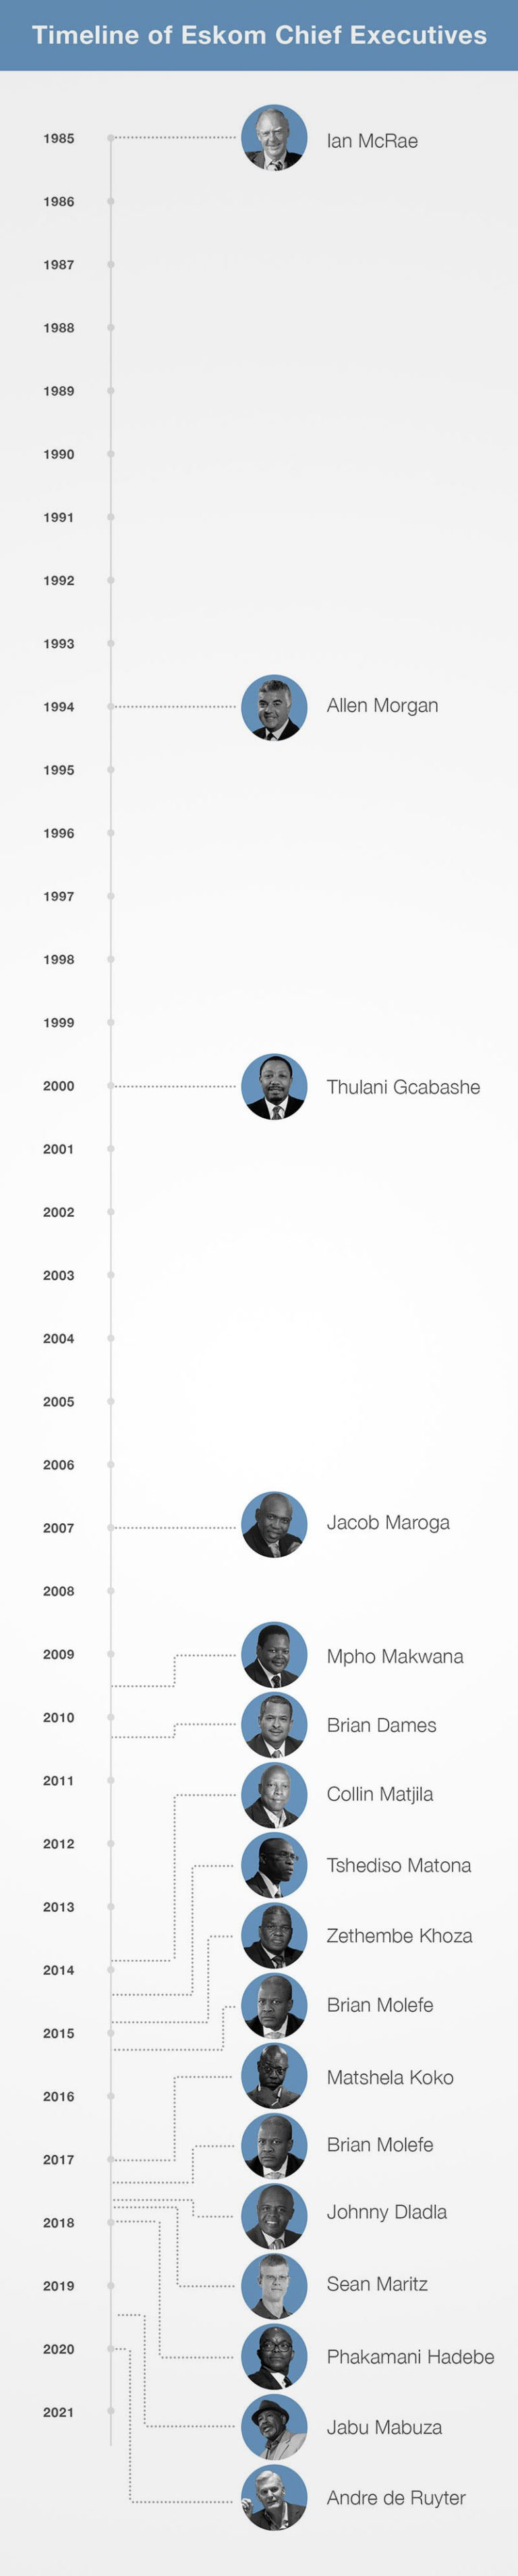 Timeline of Eskom chiefexecutives